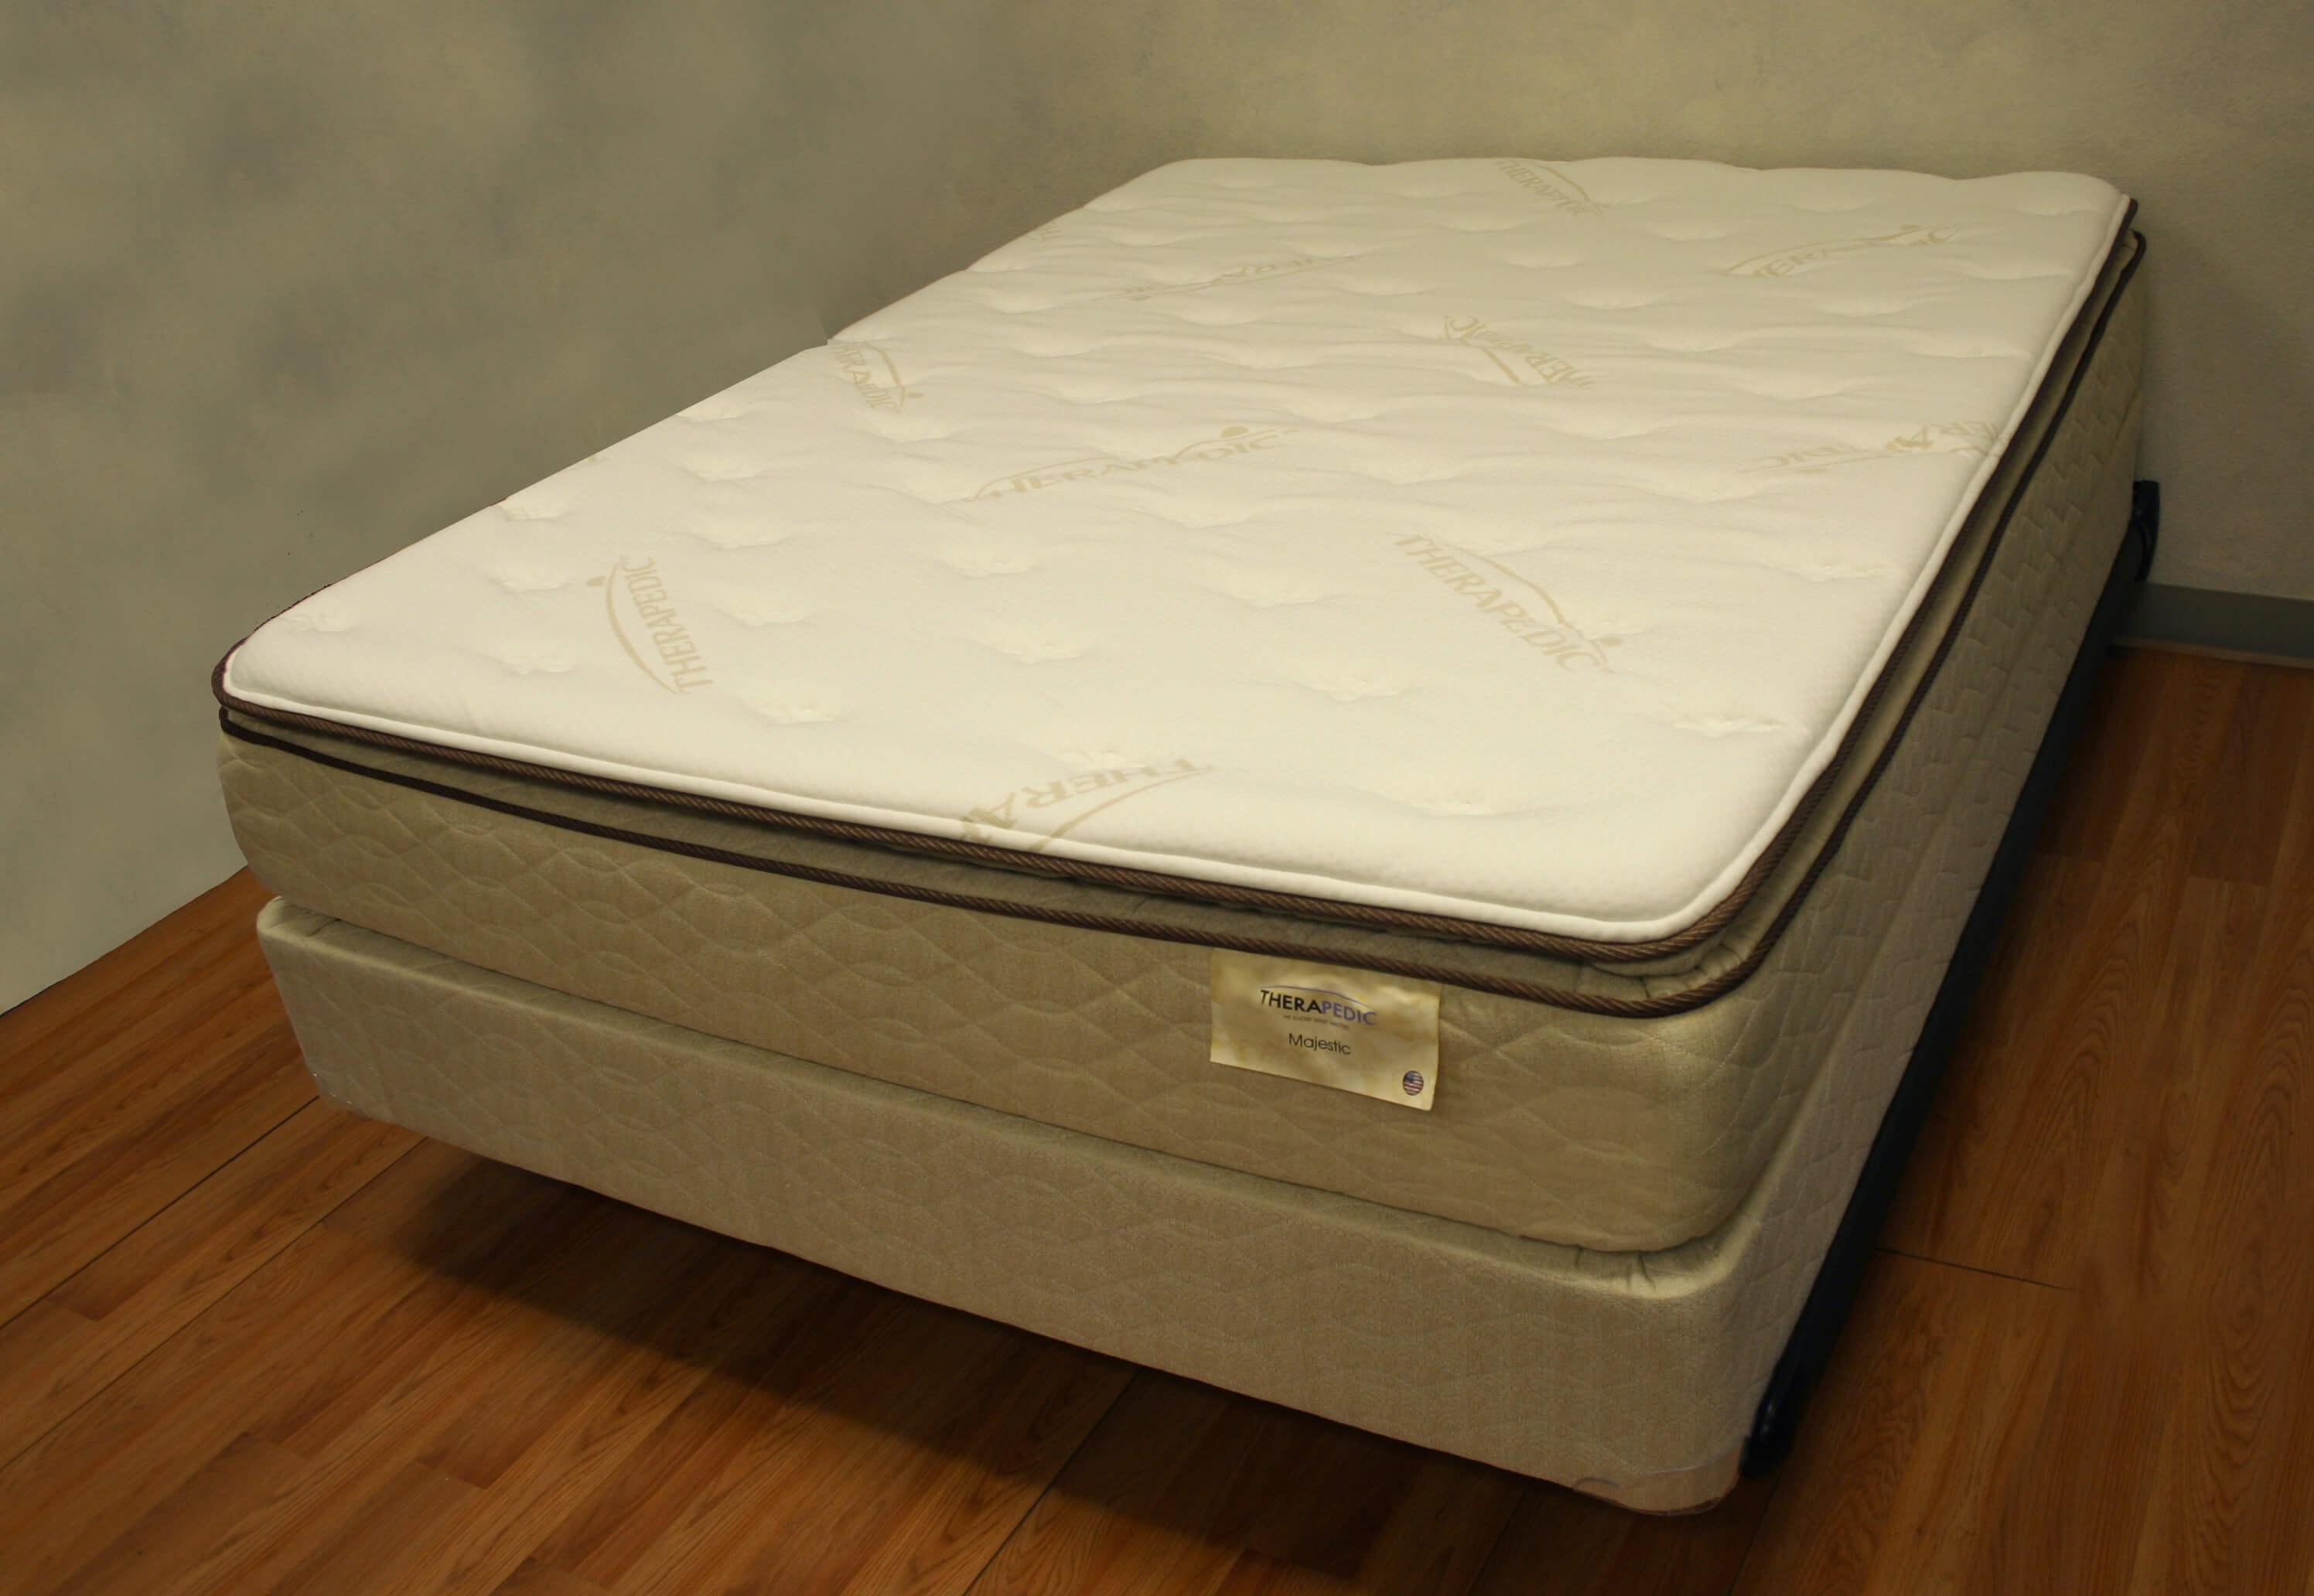 Pillow Top Mattress Pad. . Ovela Luxury Pillow Top Mattress Topper Single.  Novaform Serafina 3 Memory Foam Mattress Topper With Pillow Top.